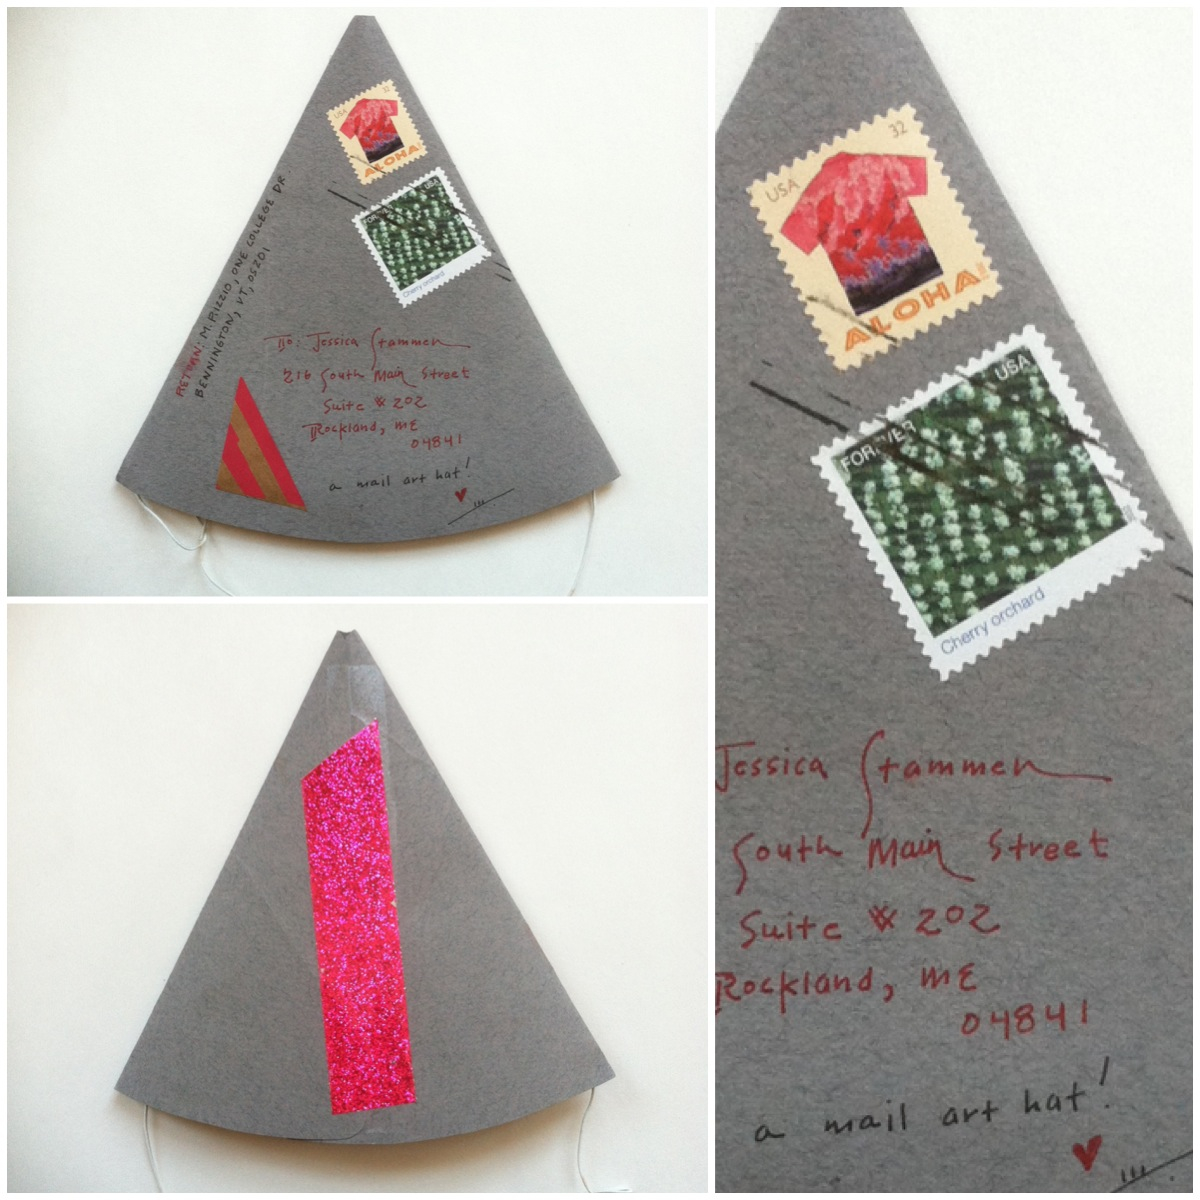 Mail Art Hat!